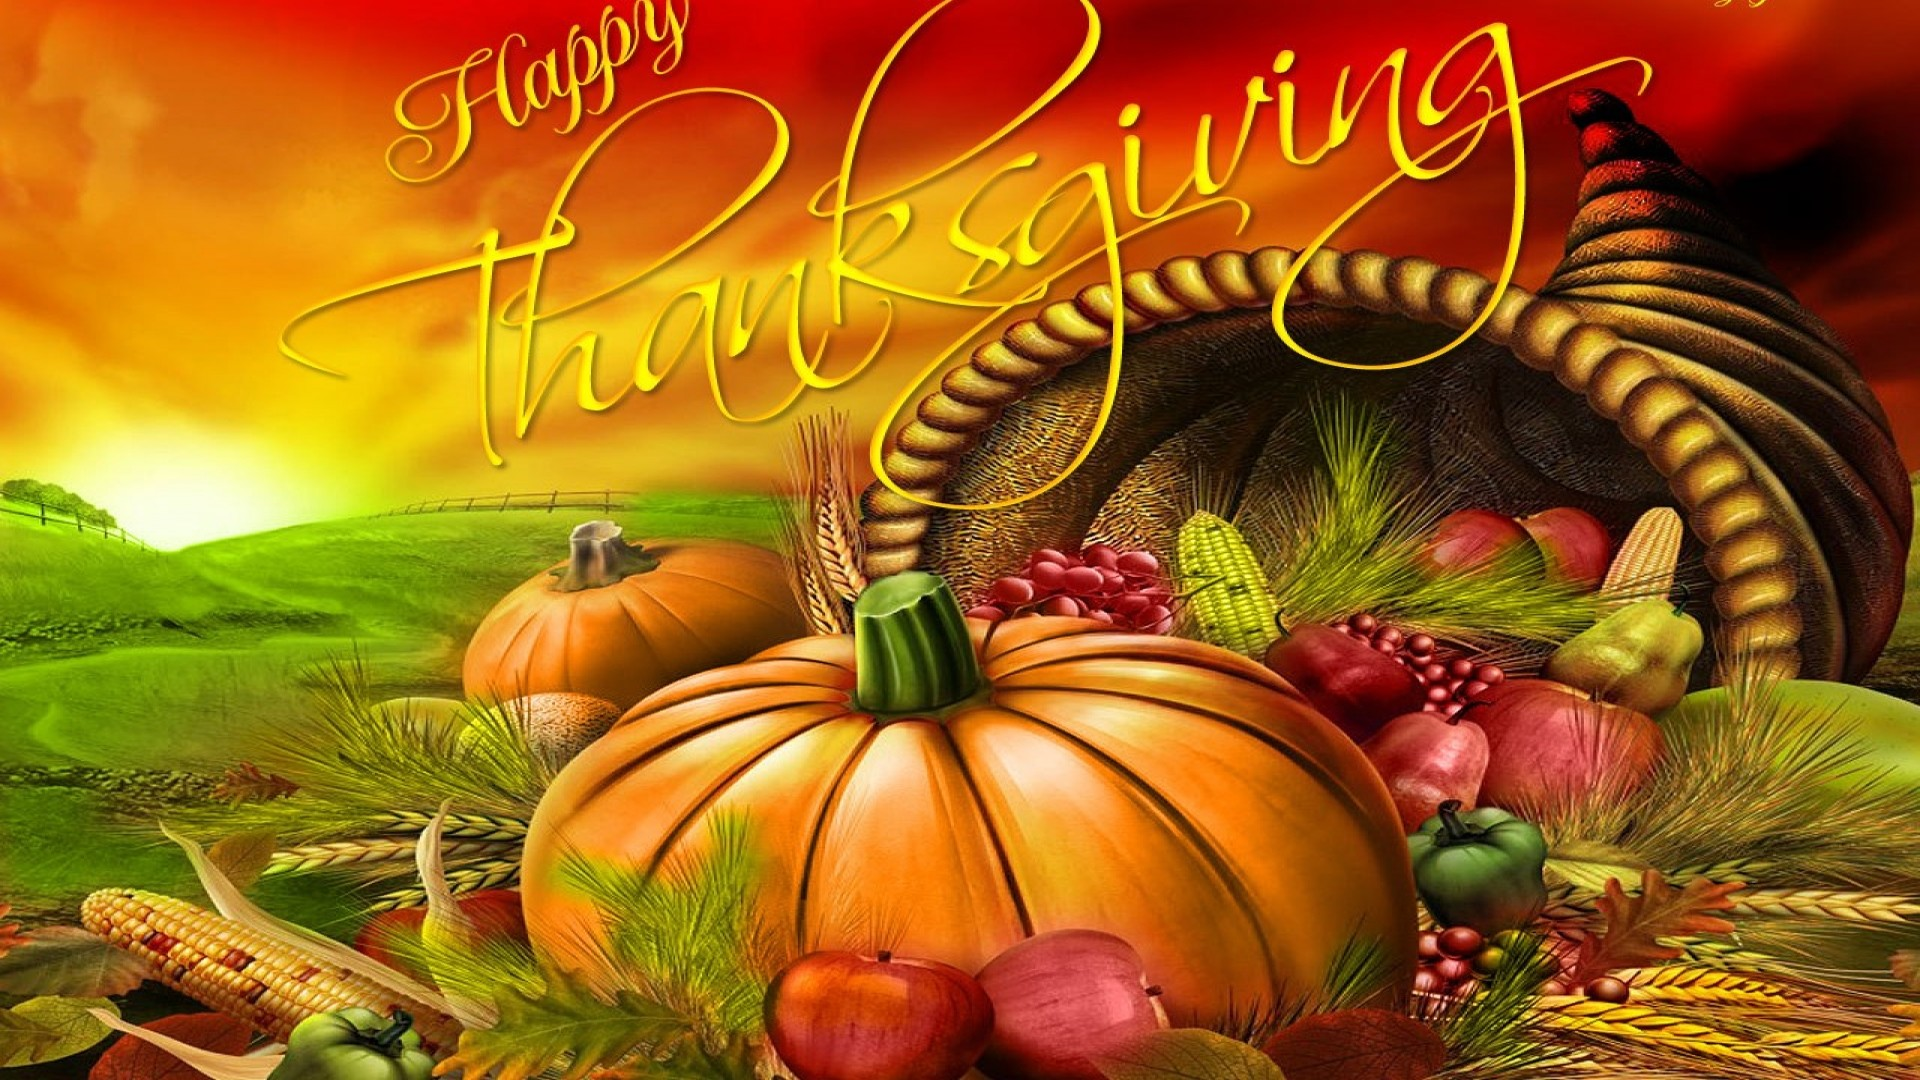 Wallpaper For Thanksgiving And Fall Thanksgiving Wallpaper 1920x1080 73 Images